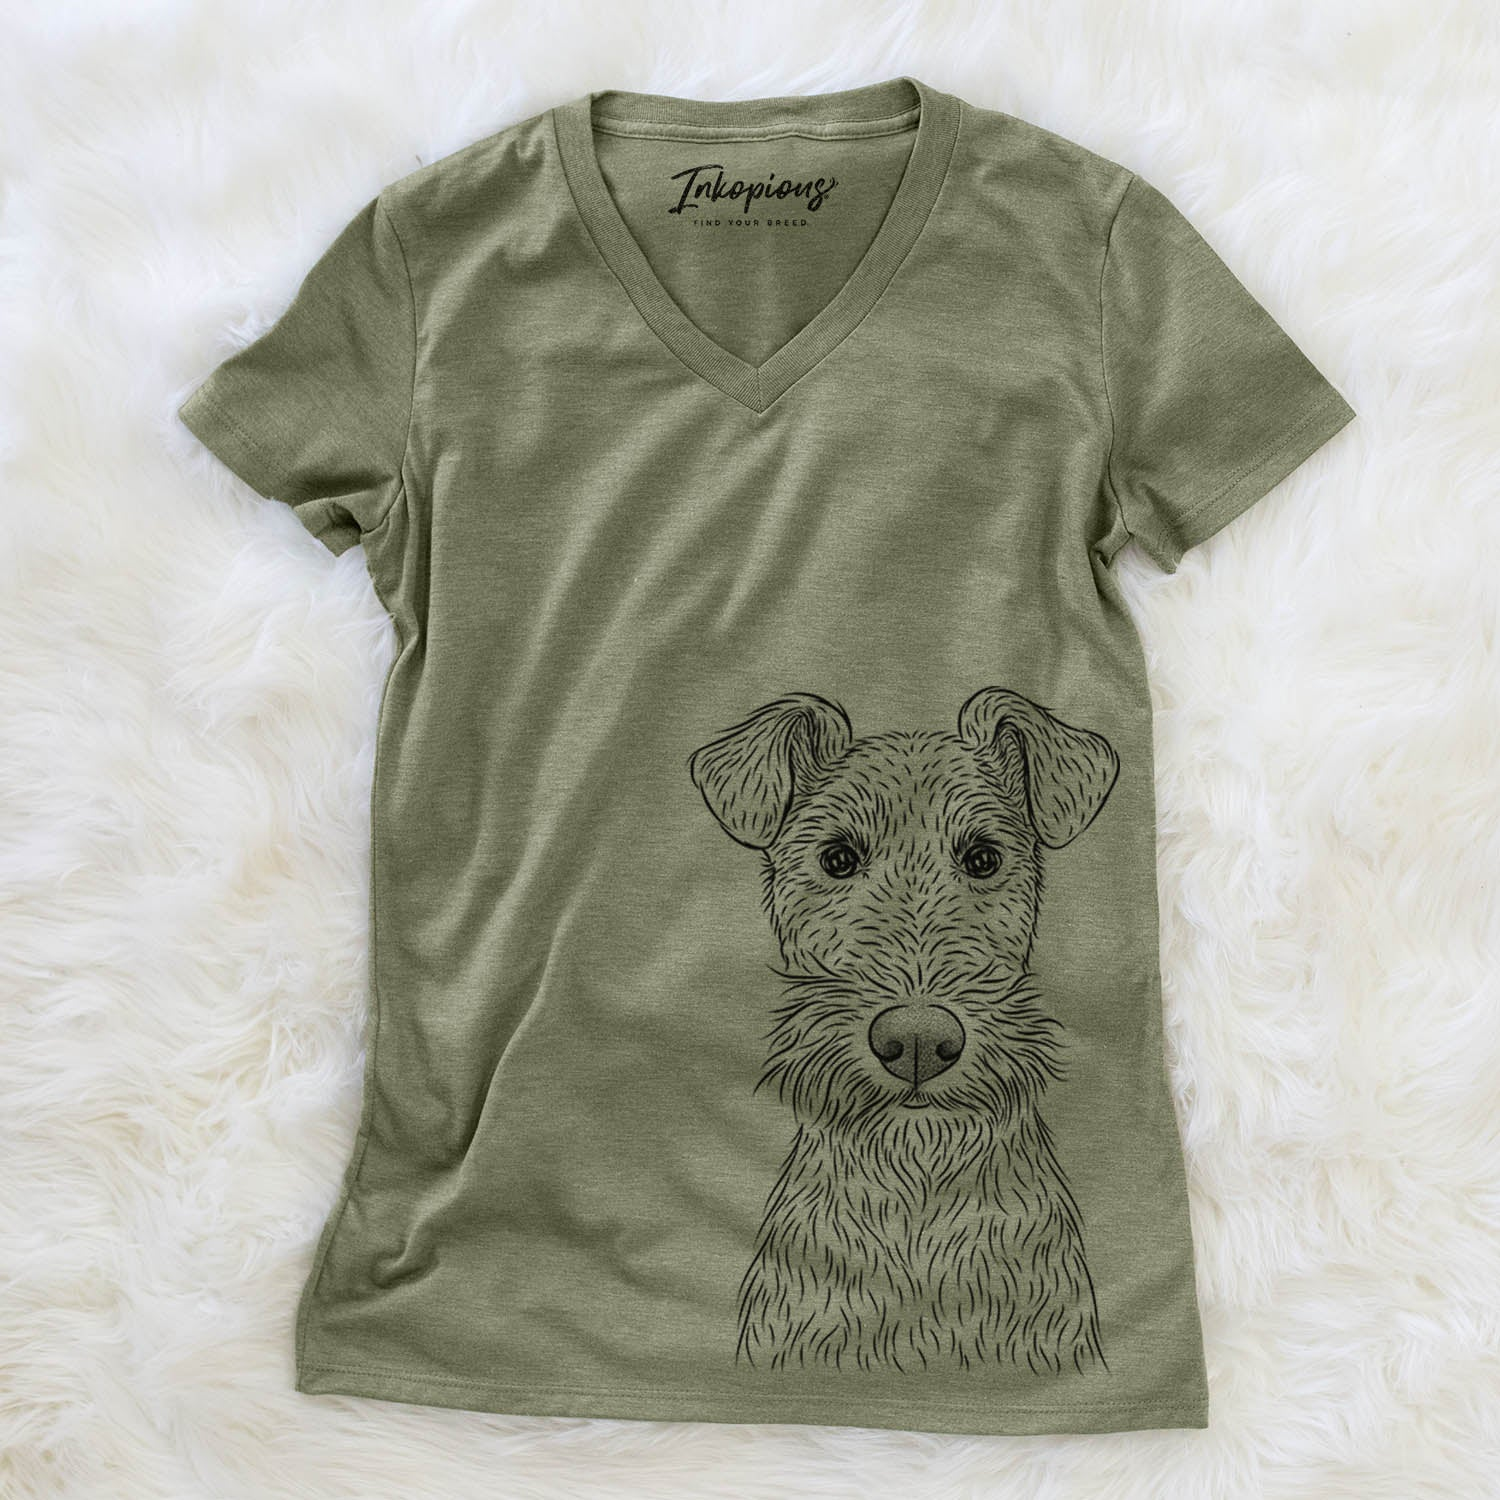 Fitz the Wire Fox Terrier - Women's Modern Fit V-neck Shirt